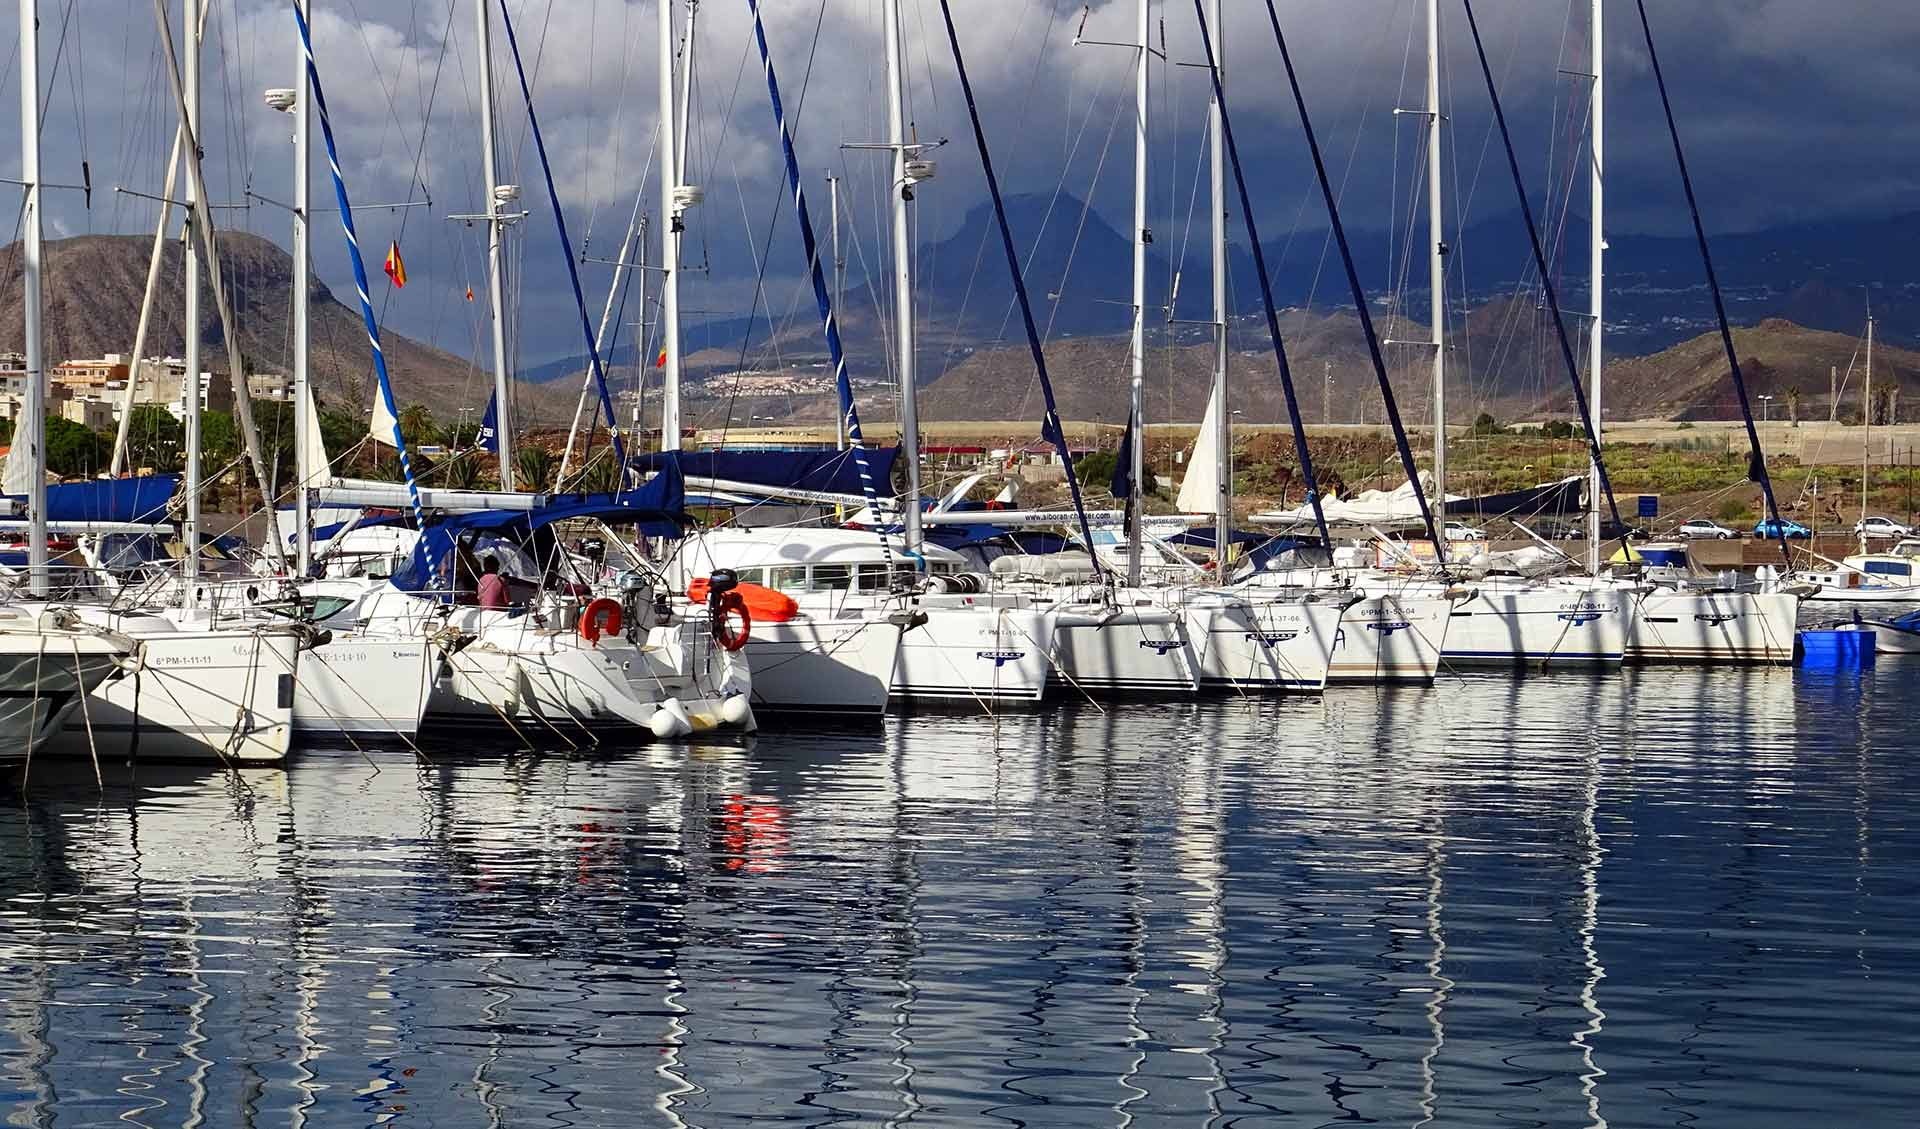 Marina del Sur will is one charter hub in Tenerife, go look for Lava Charter